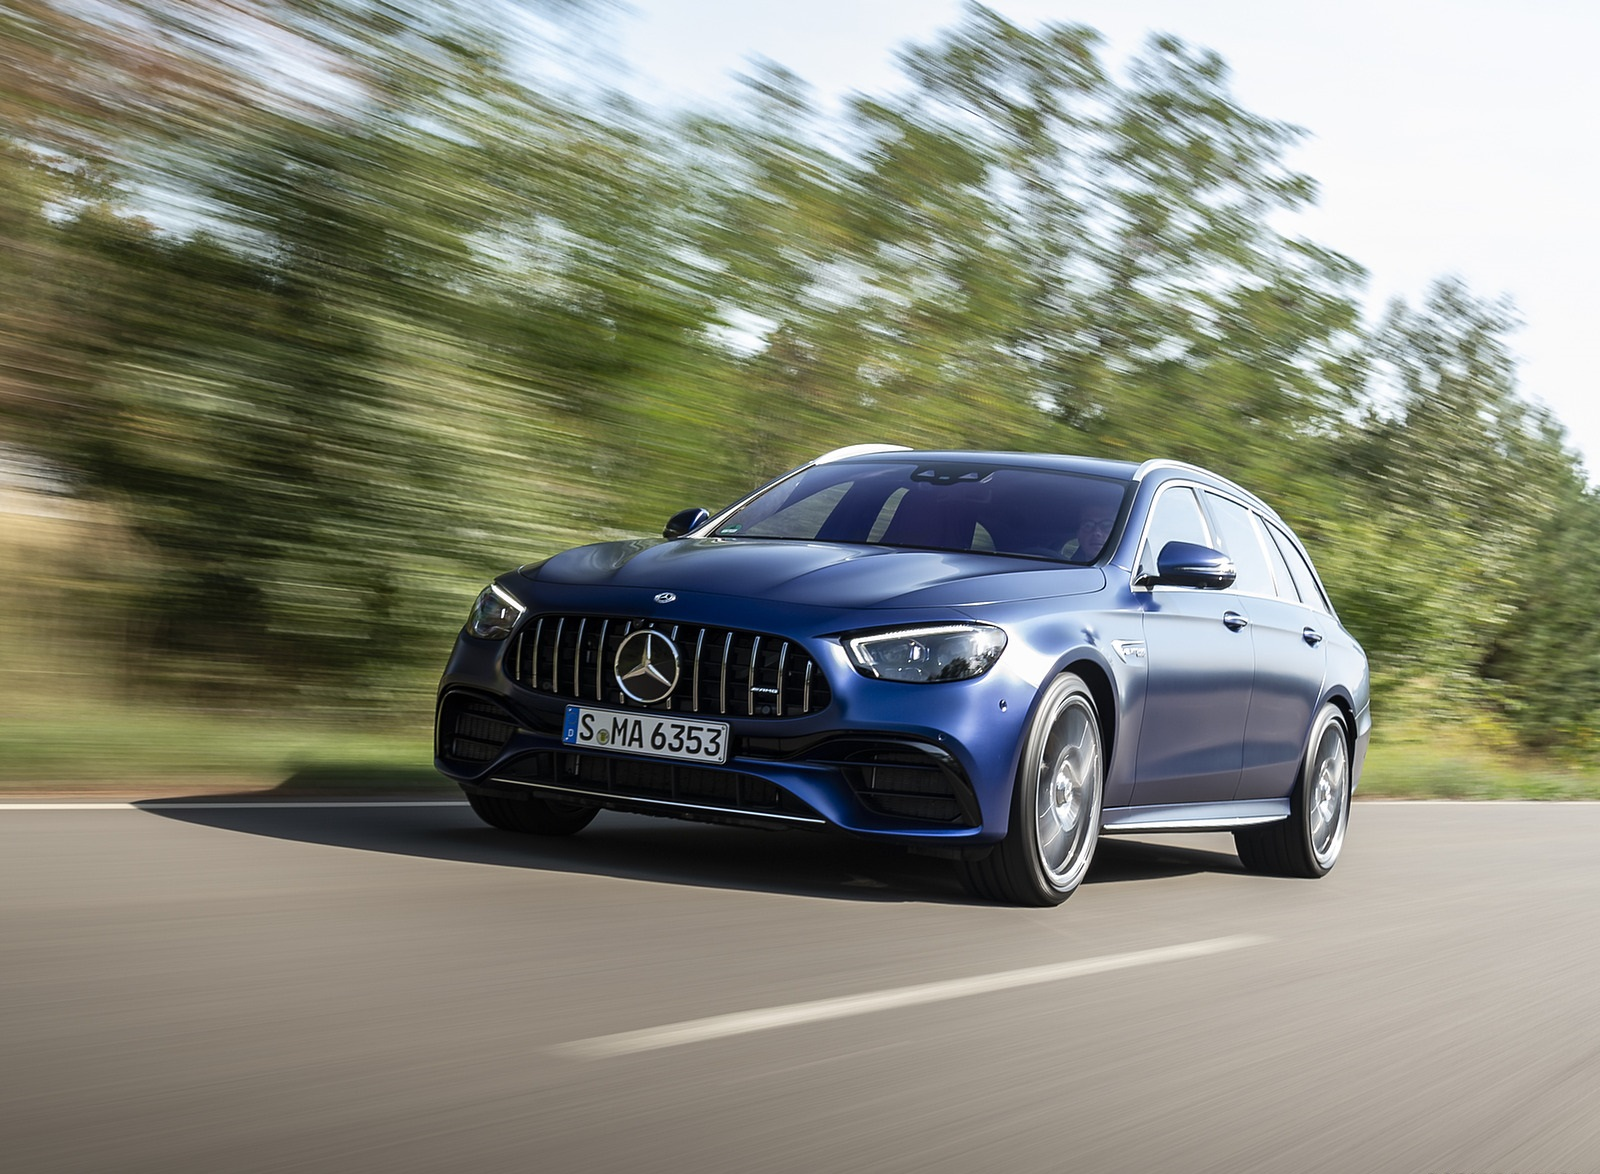 2021 Mercedes-AMG E 63 S Estate 4MATIC+ (Color: Designo Magno Brilliant Blue) Front Three-Quarter Wallpapers (4)